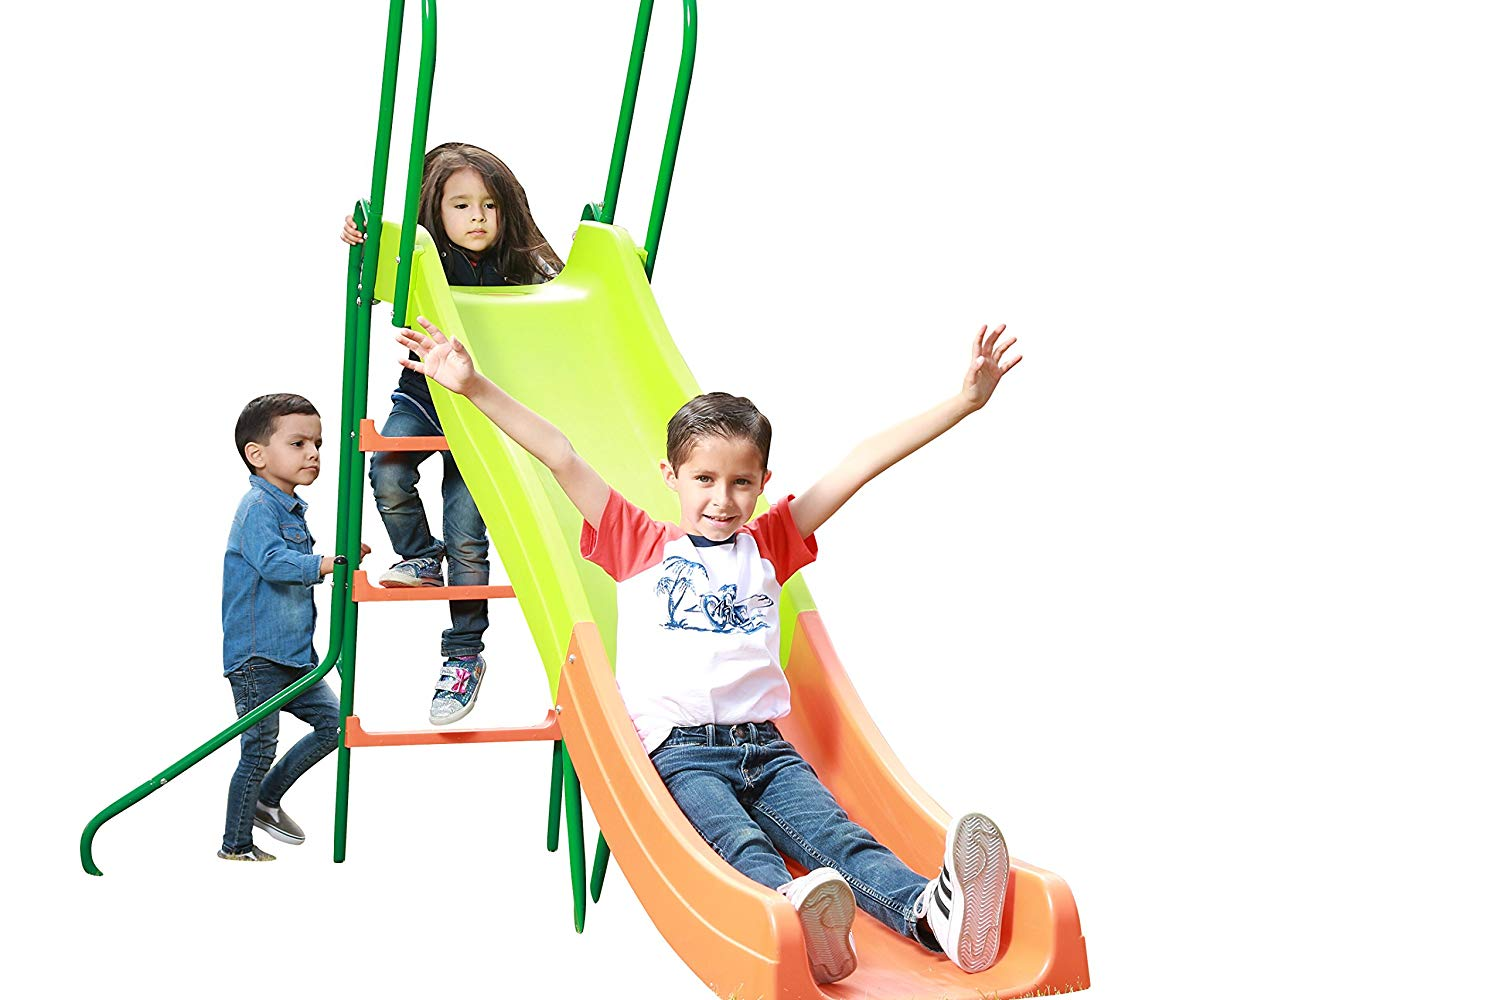 SLIDEWHIZZER Kids Play Outdoor Playground Slide; 8-FT Freestanding Playset